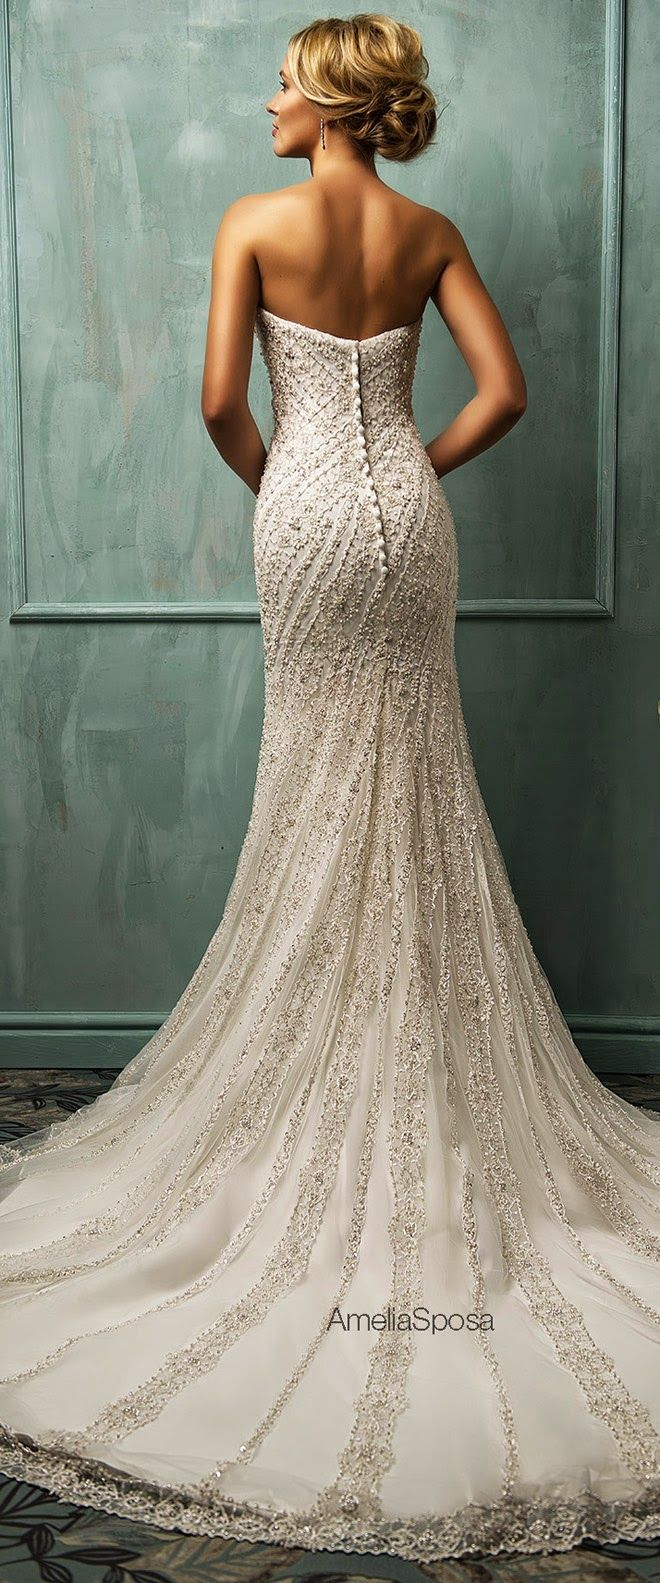 Wouldn't wear it, but stunning!